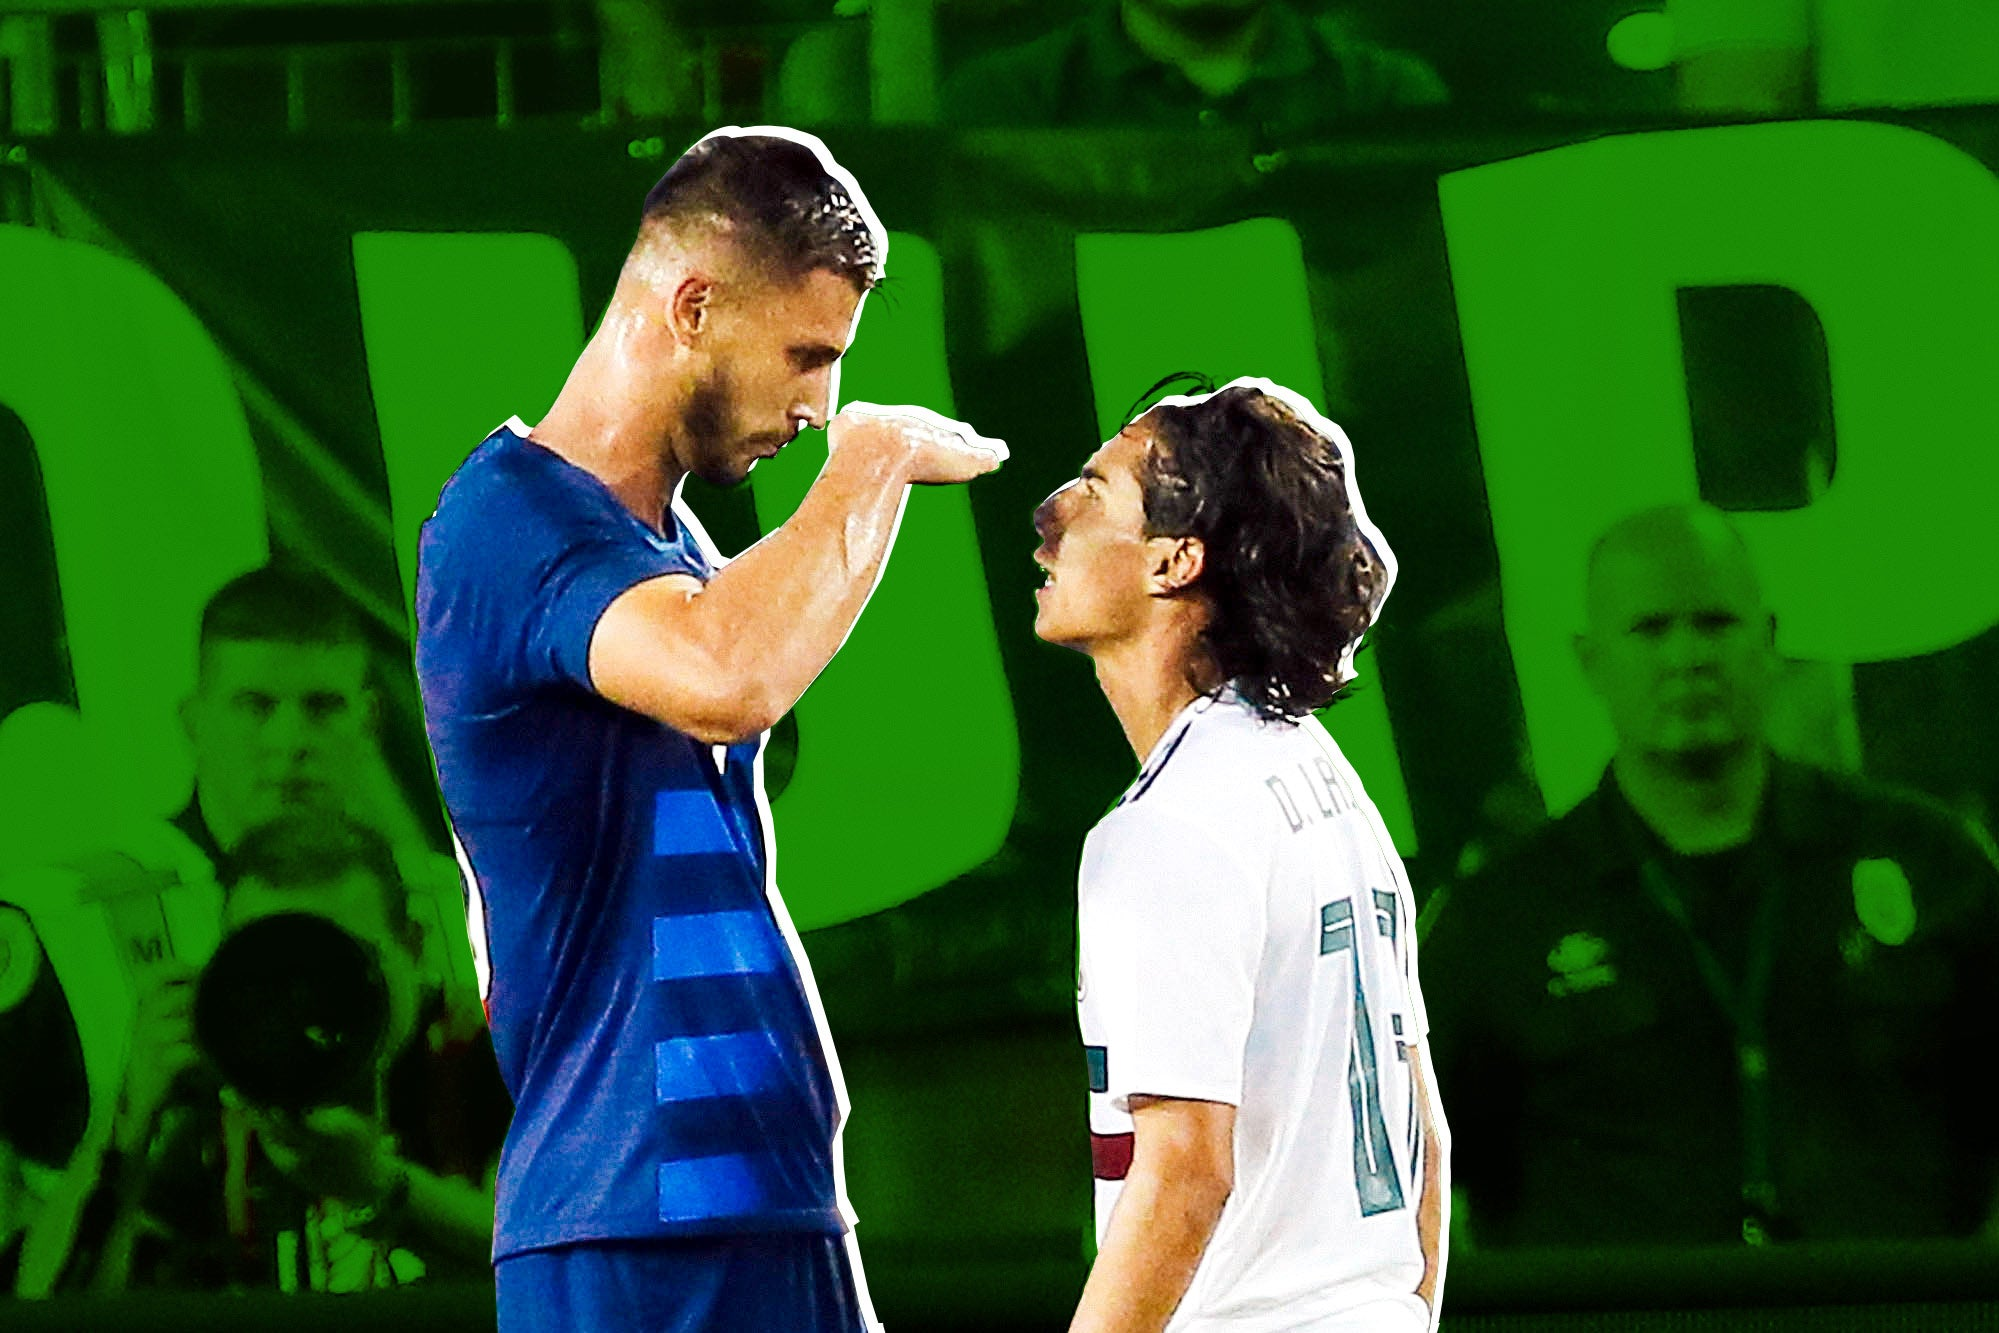 Matt Miazga holds his hand up to measure Diego Lainez in a taunt.